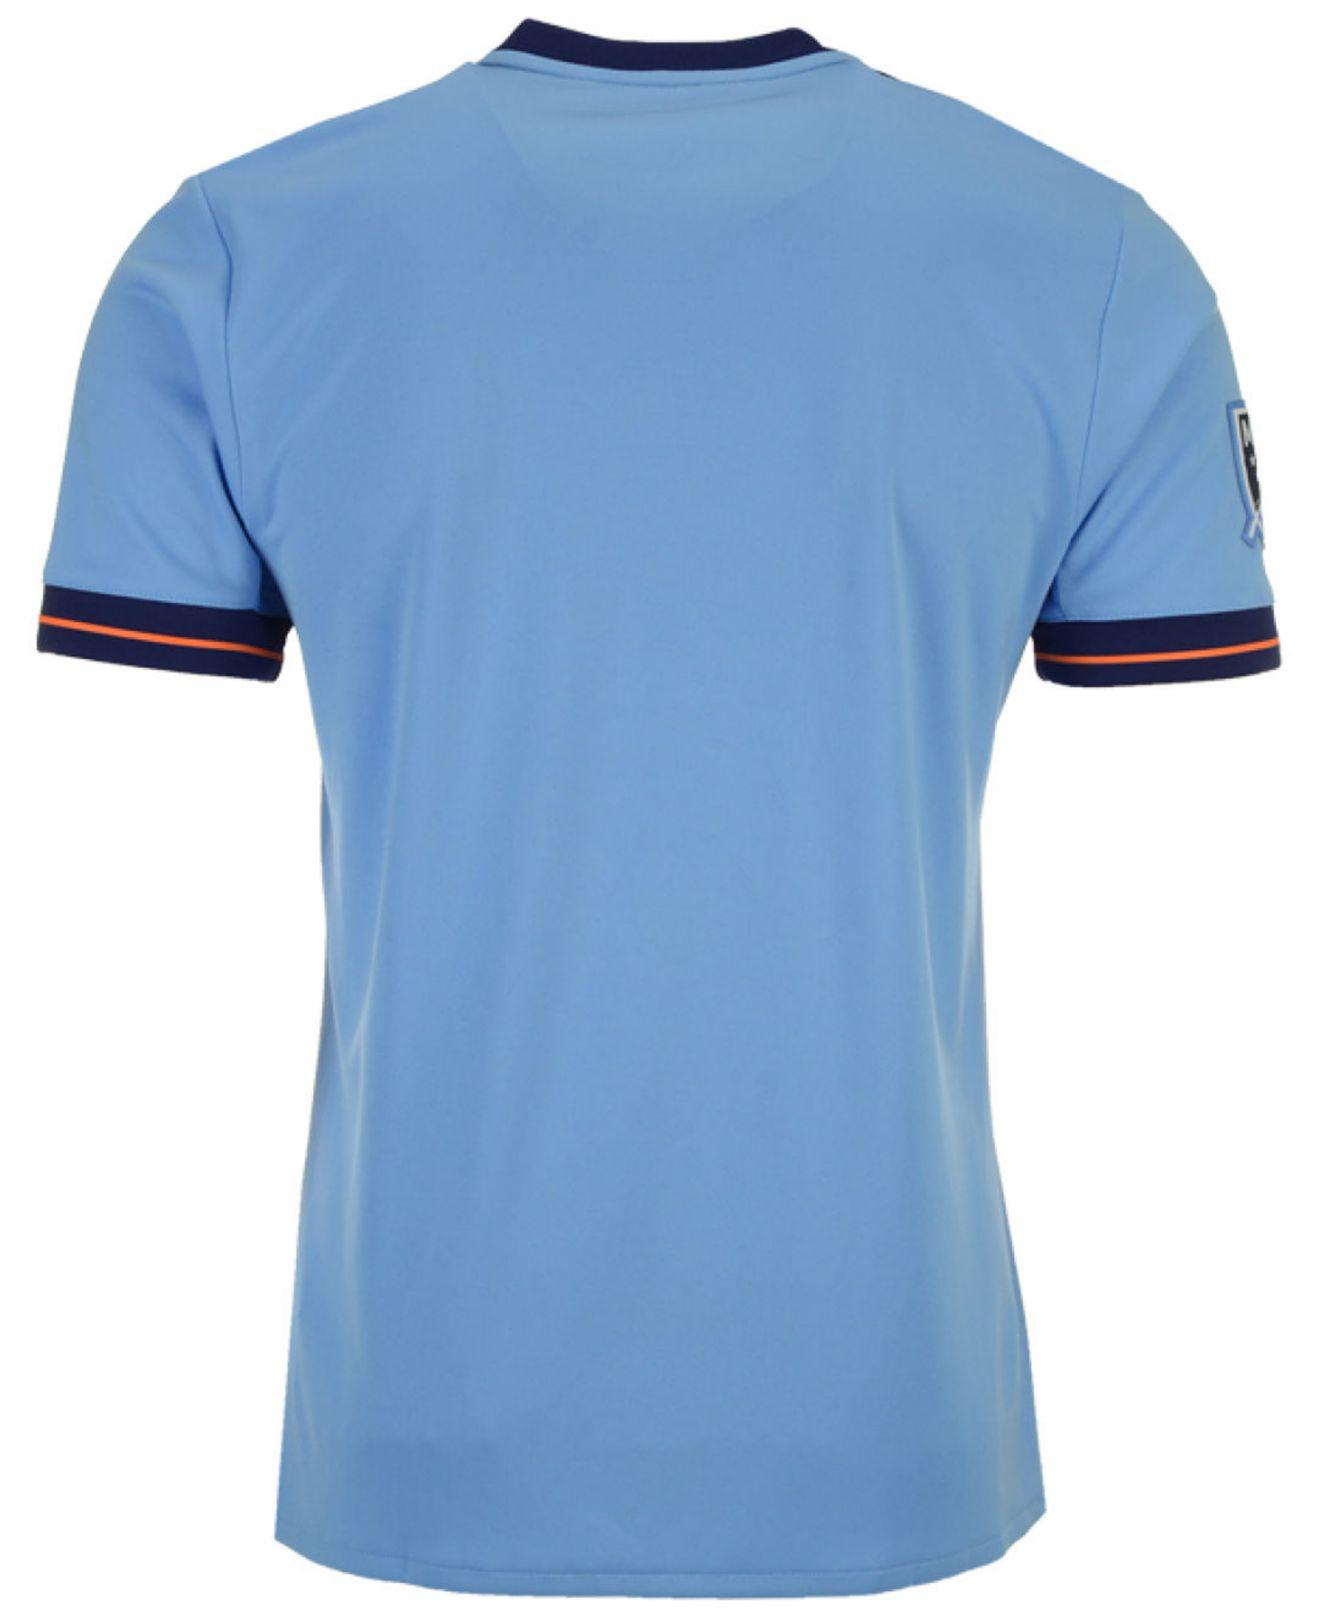 796cd004bd0 adidas Men's Primary Replica Jersey in Blue for Men - Save 47% - Lyst